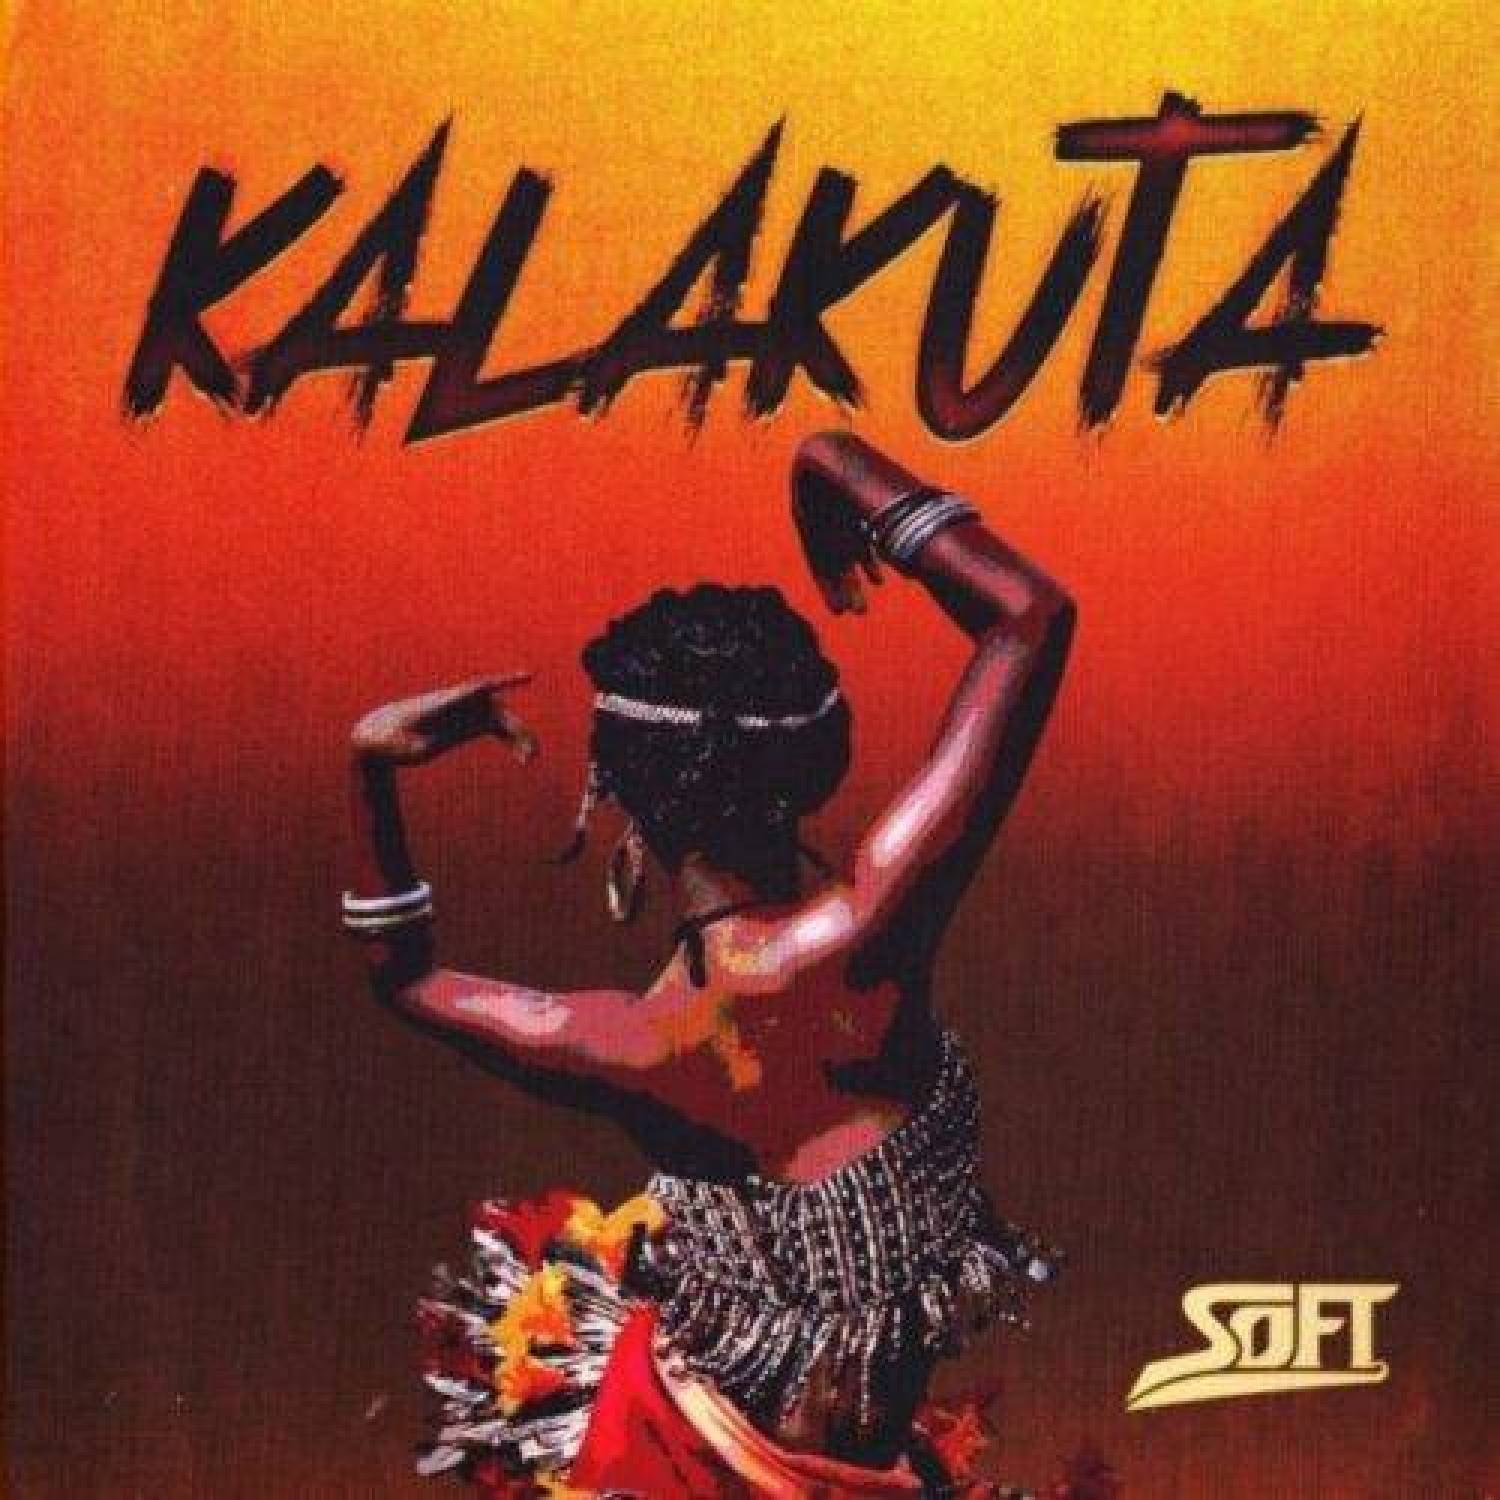 DOWNLOAD MP3: Soft – Kalakuta (Free MP3) AUDIO 320kbps